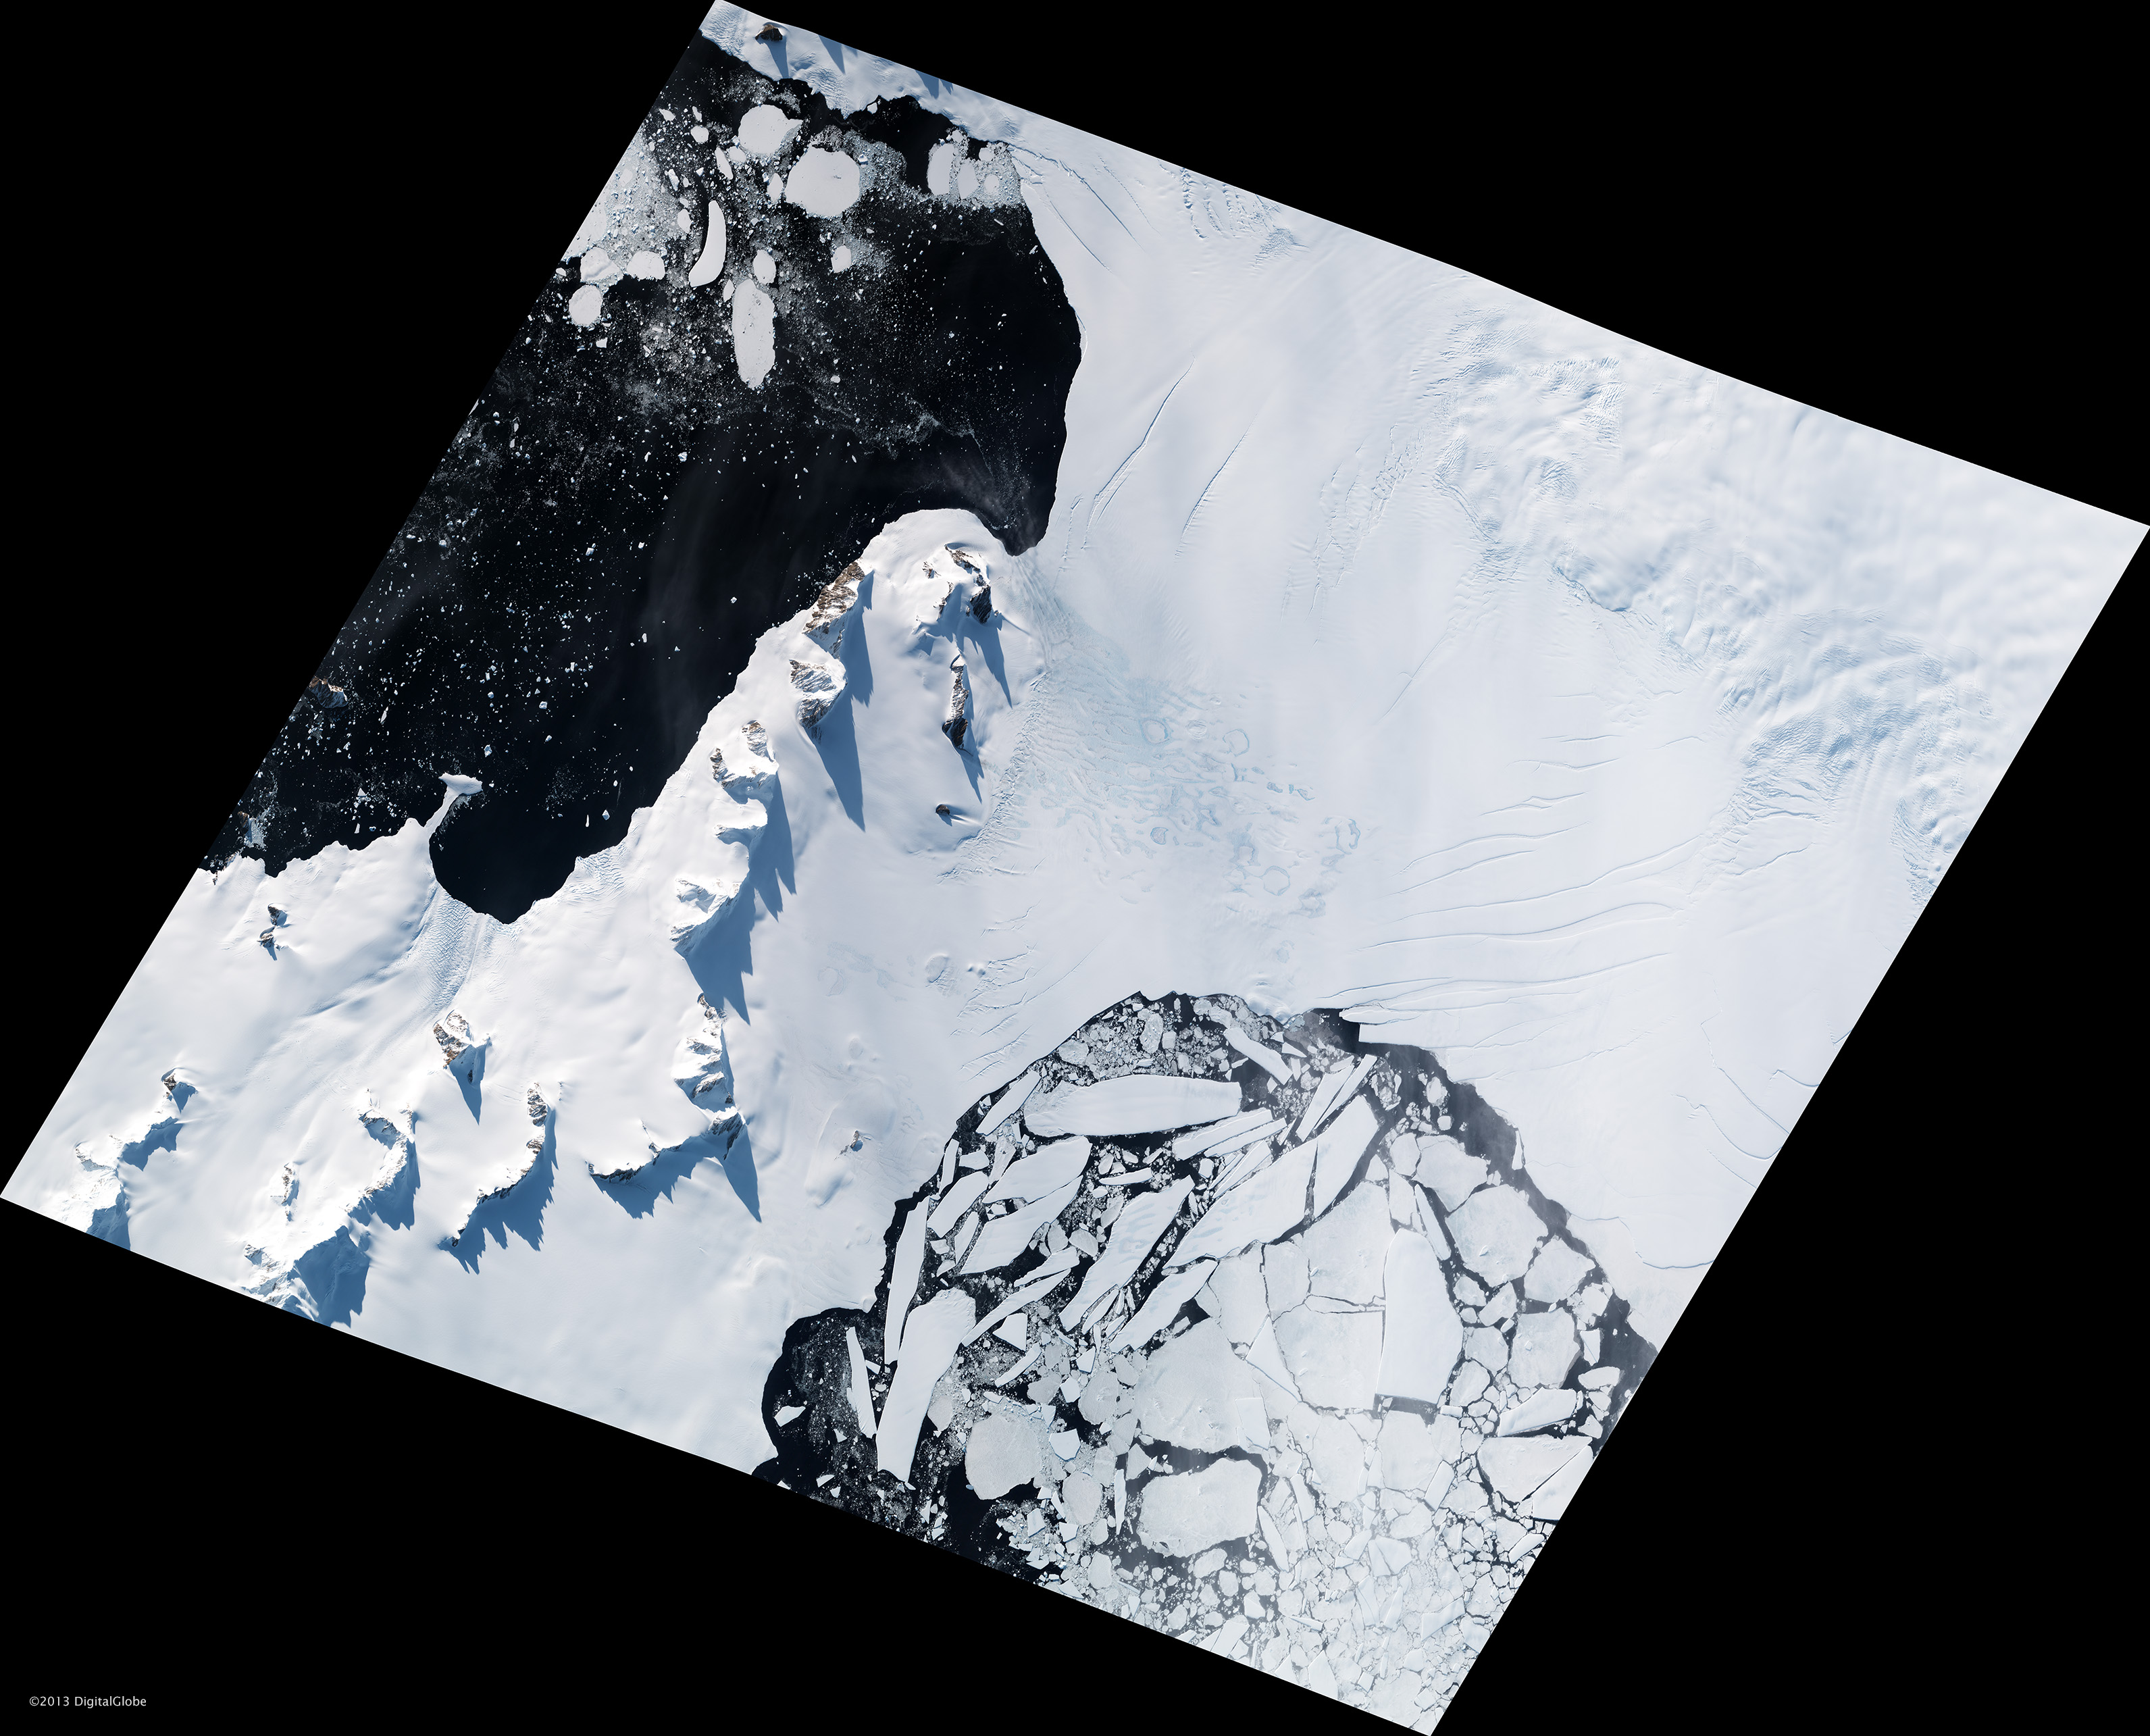 Breakup Continues on the Wilkins Ice Shelf - related image preview